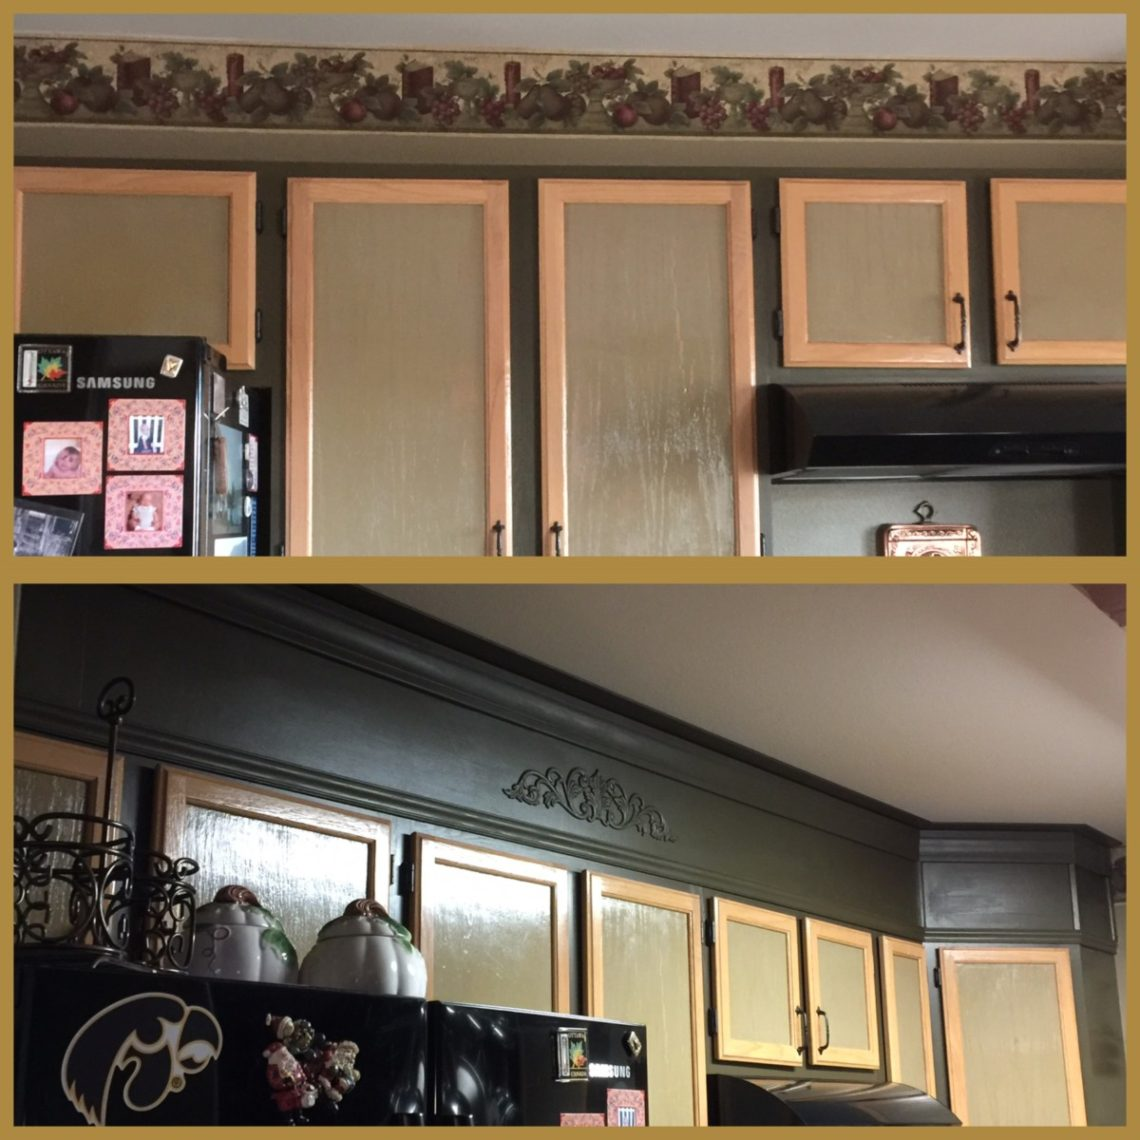 Decorating Space Above Kitchen Cabinets: Update The Space Above Kitchen Cabinets